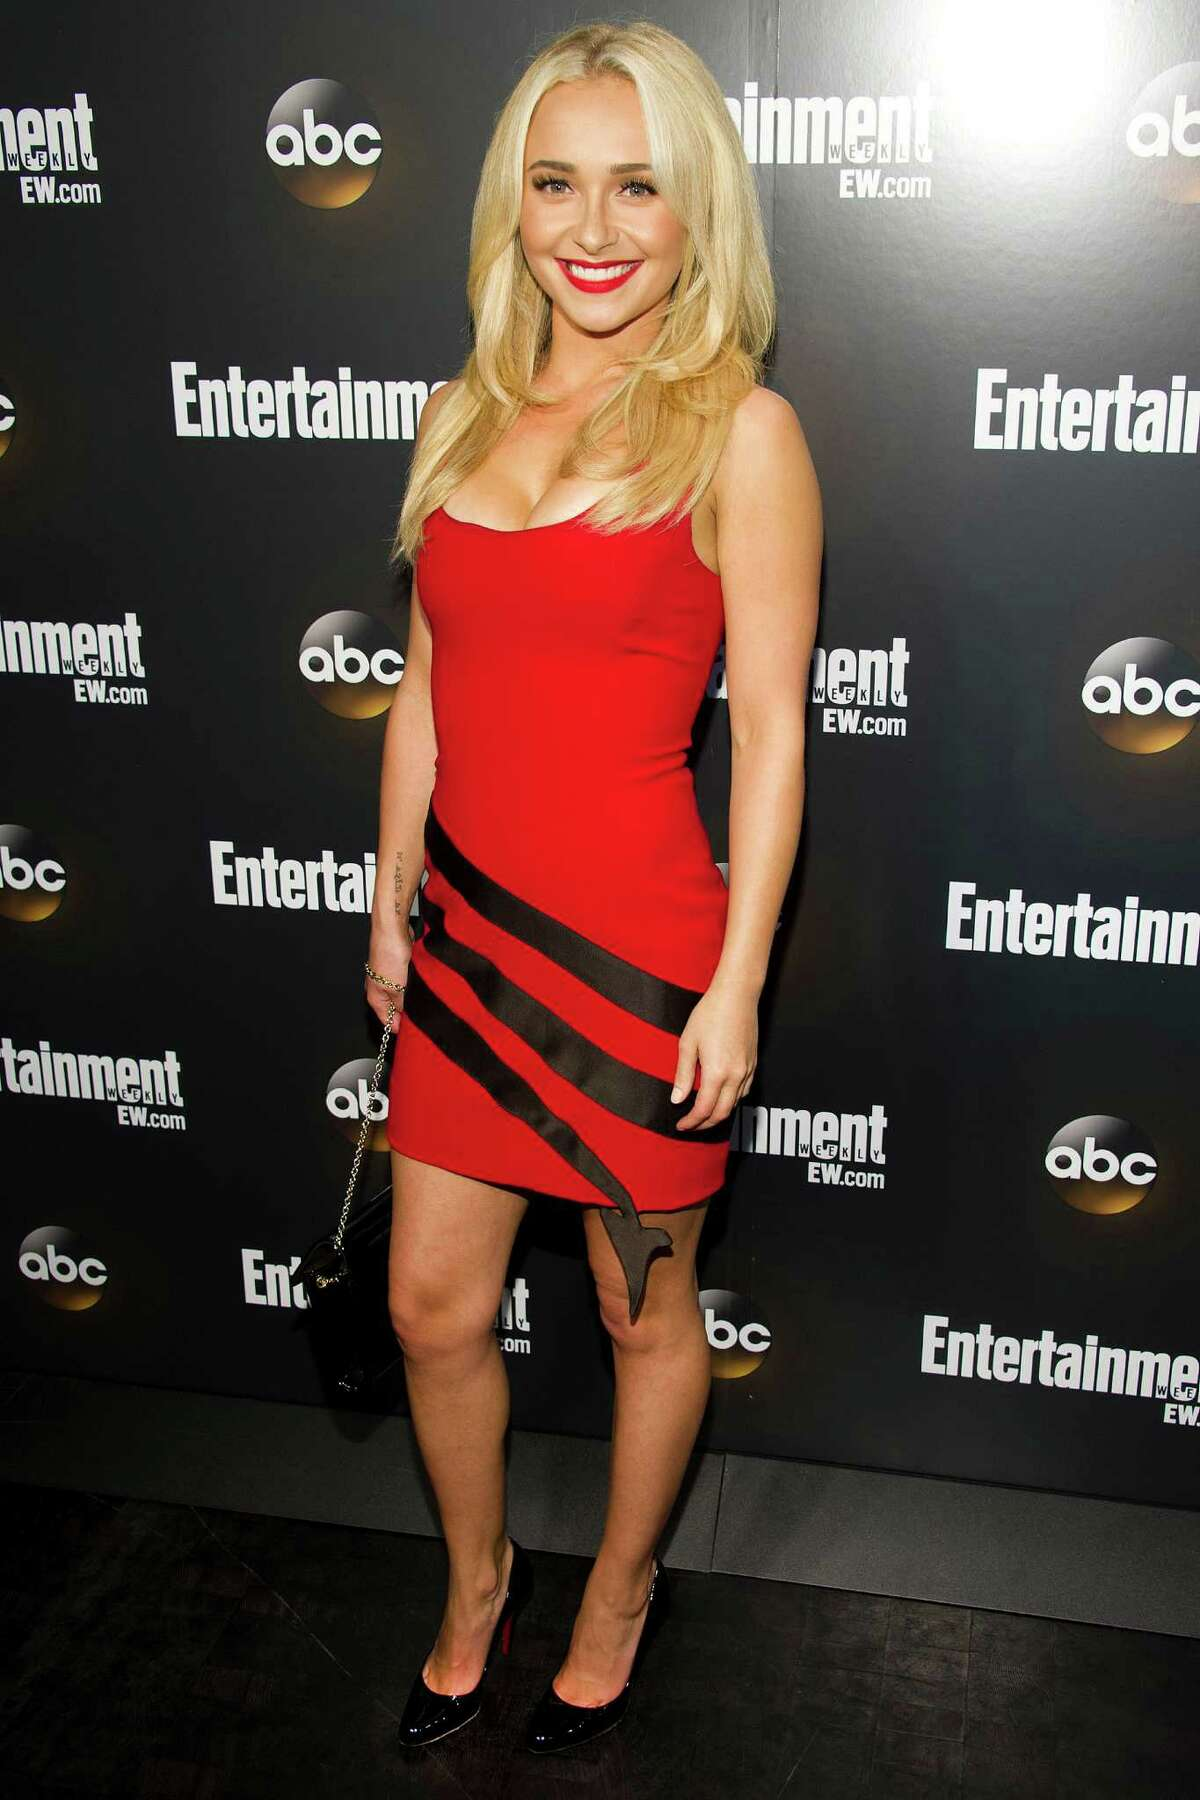 Hayden Panettiere attends the Entertainment Weekly and ABC Upfronts Party in New York, Tuesday, May 15, 2012.